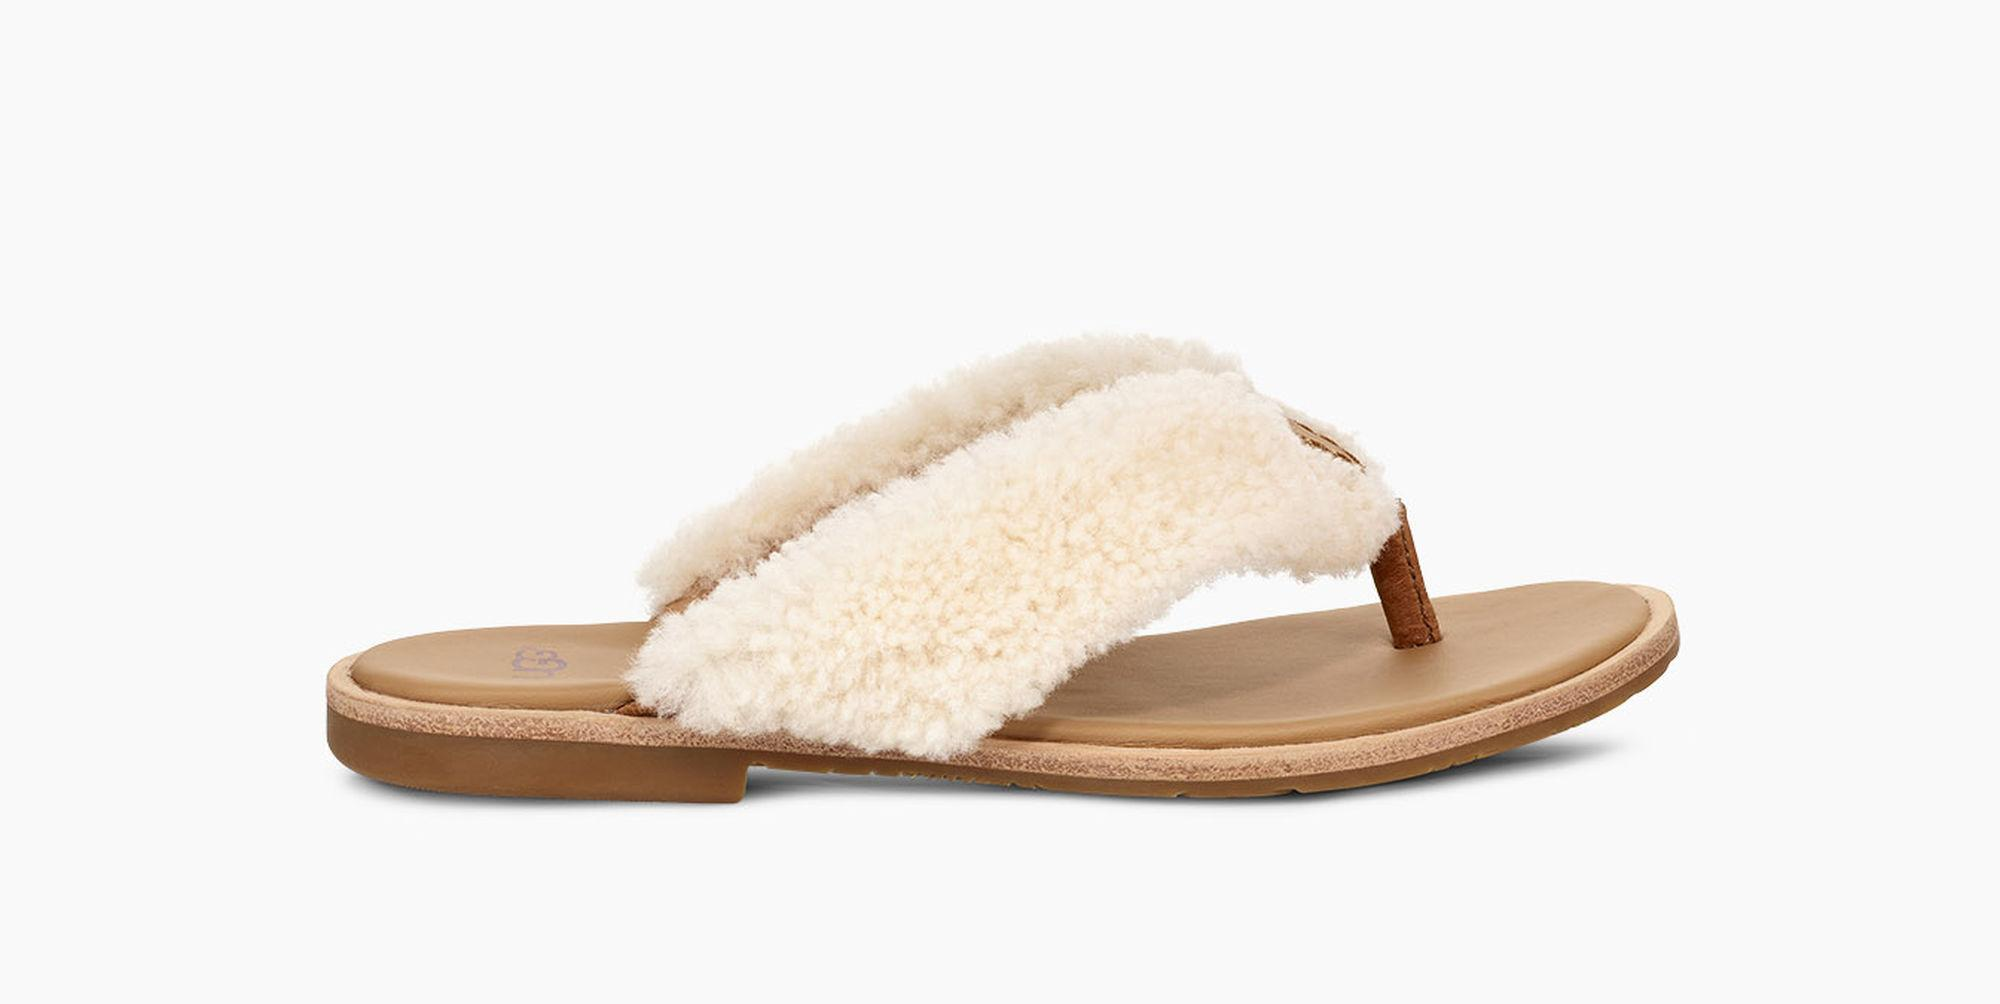 ac32ace4861 Lyst - UGG Women's Alicia Flip Flop in Natural